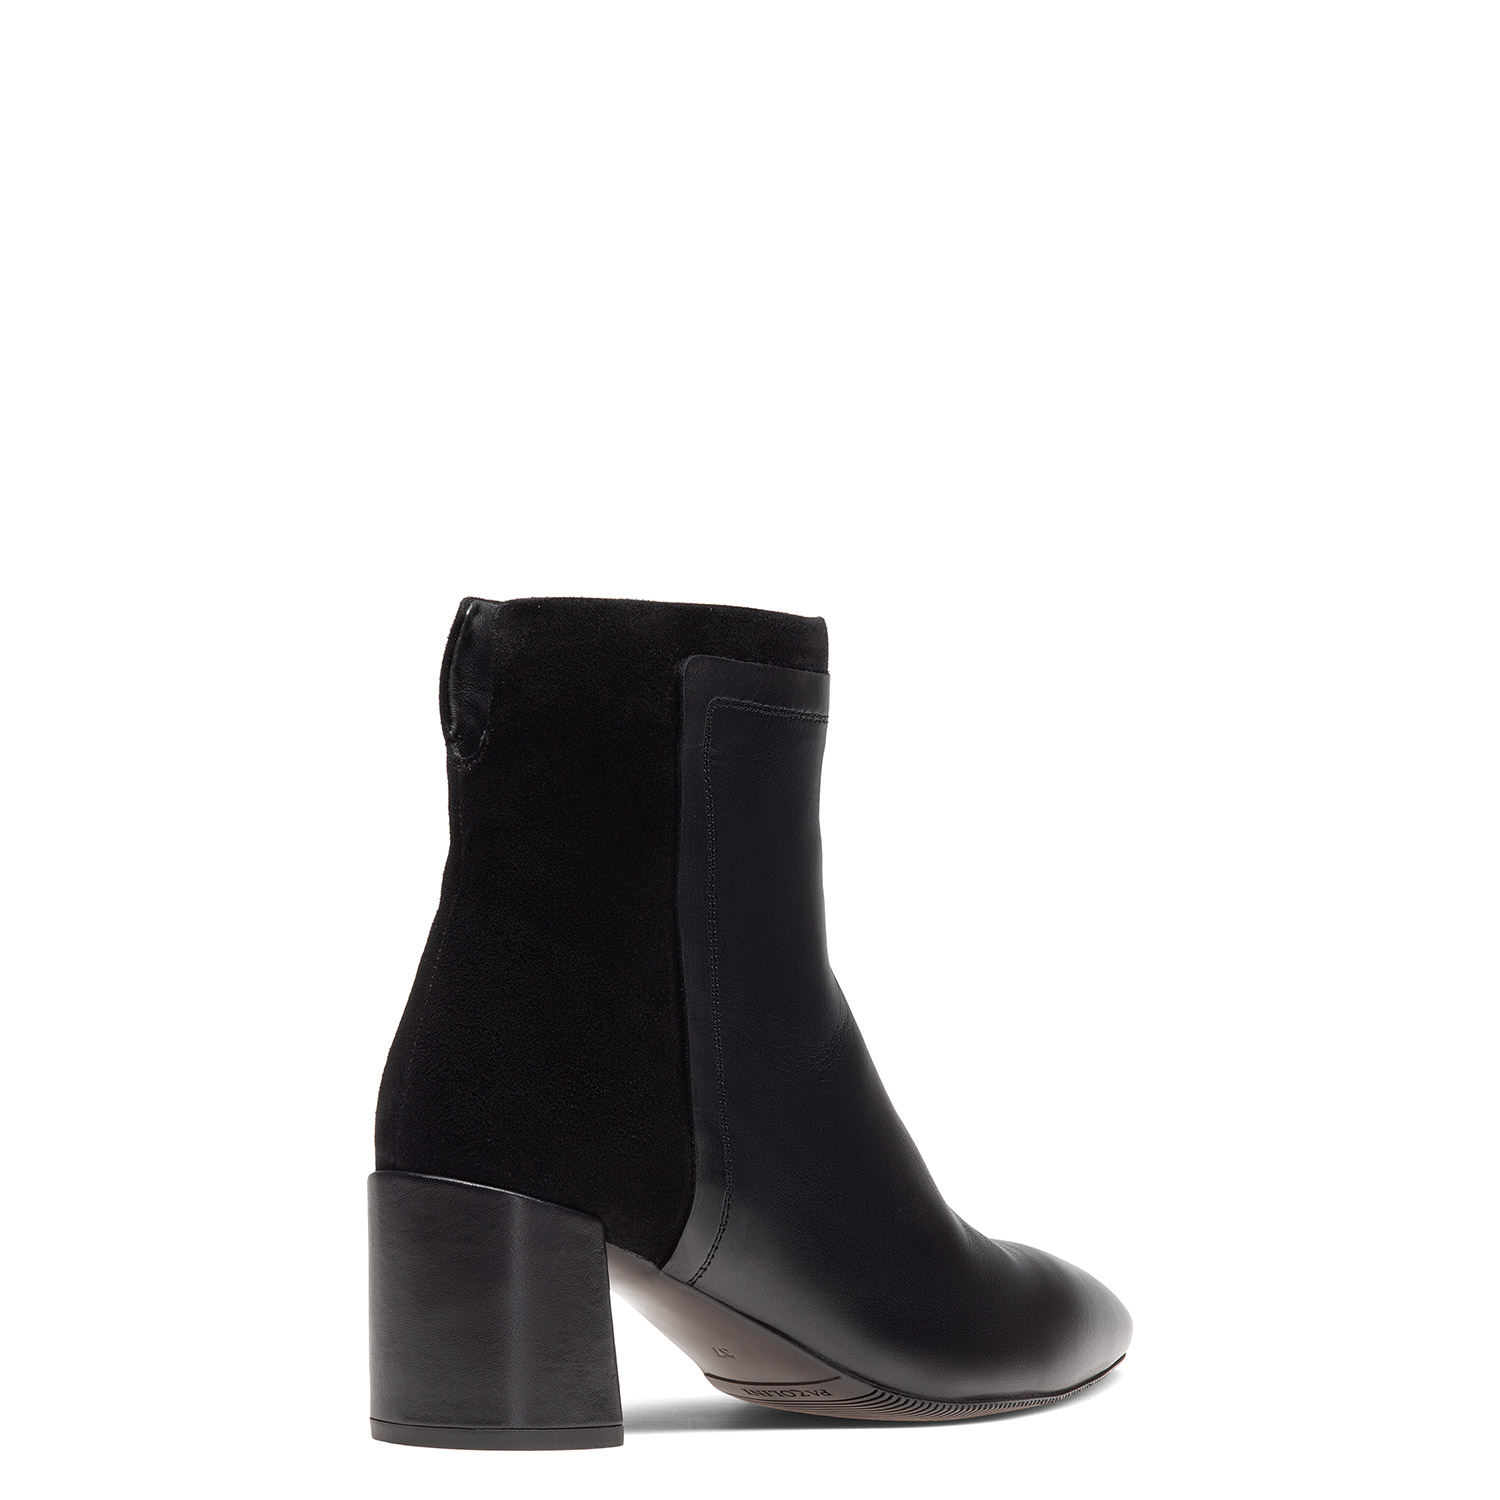 Women's ankle boots PAZOLINI UU-PAP12-1